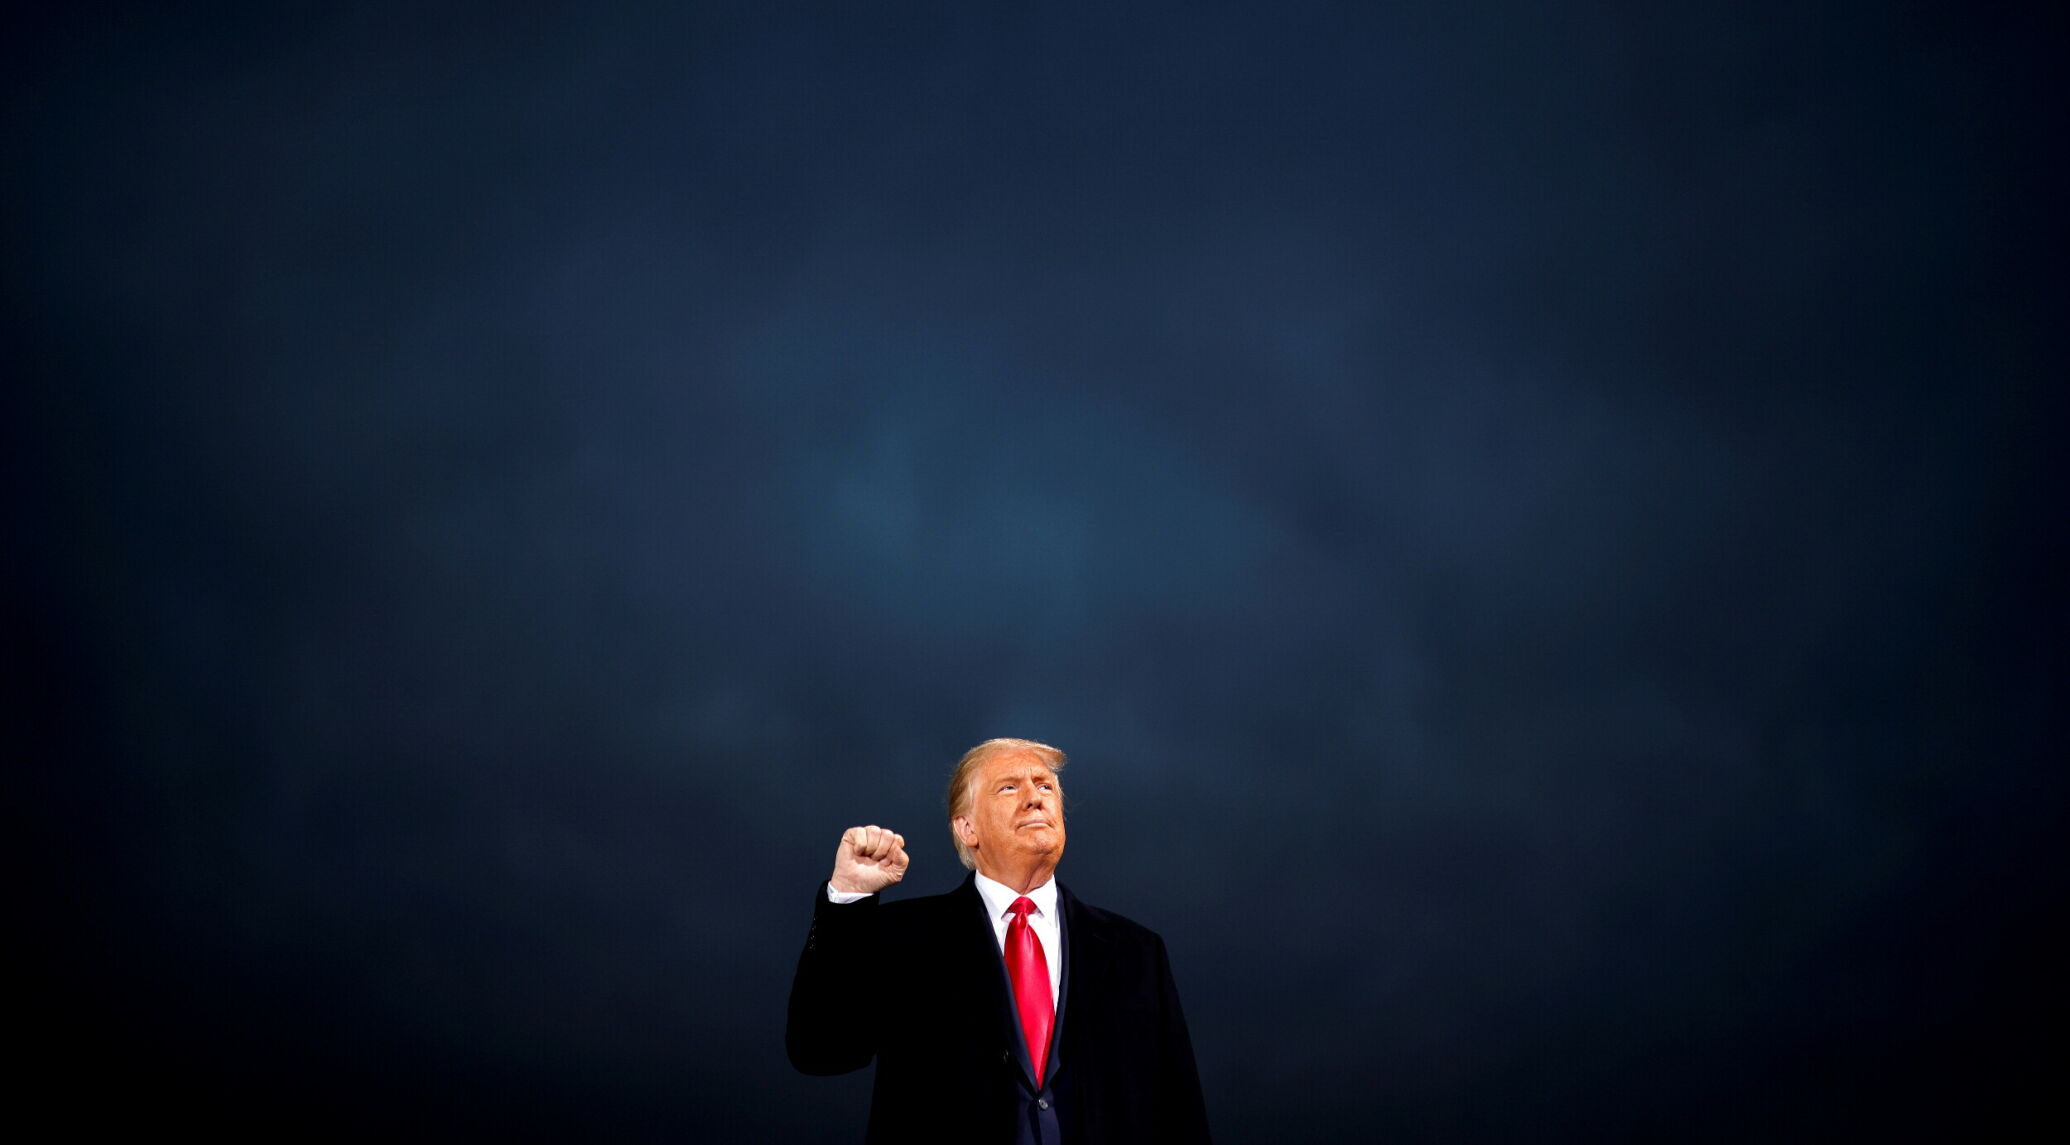 """U.S. President Donald Trump makes a fist during a campaign rally at Des Moines International Airport in Des Moines, Iowa, U.S., October 14, 2020. REUTERS/Carlos Barria/File Photo     TPX IMAGES OF THE DAY     SEARCH """"POY USA ELECTION"""" FOR THIS STORY. SEARCH """"WIDER IMAGE"""" FOR ALL STORIES"""